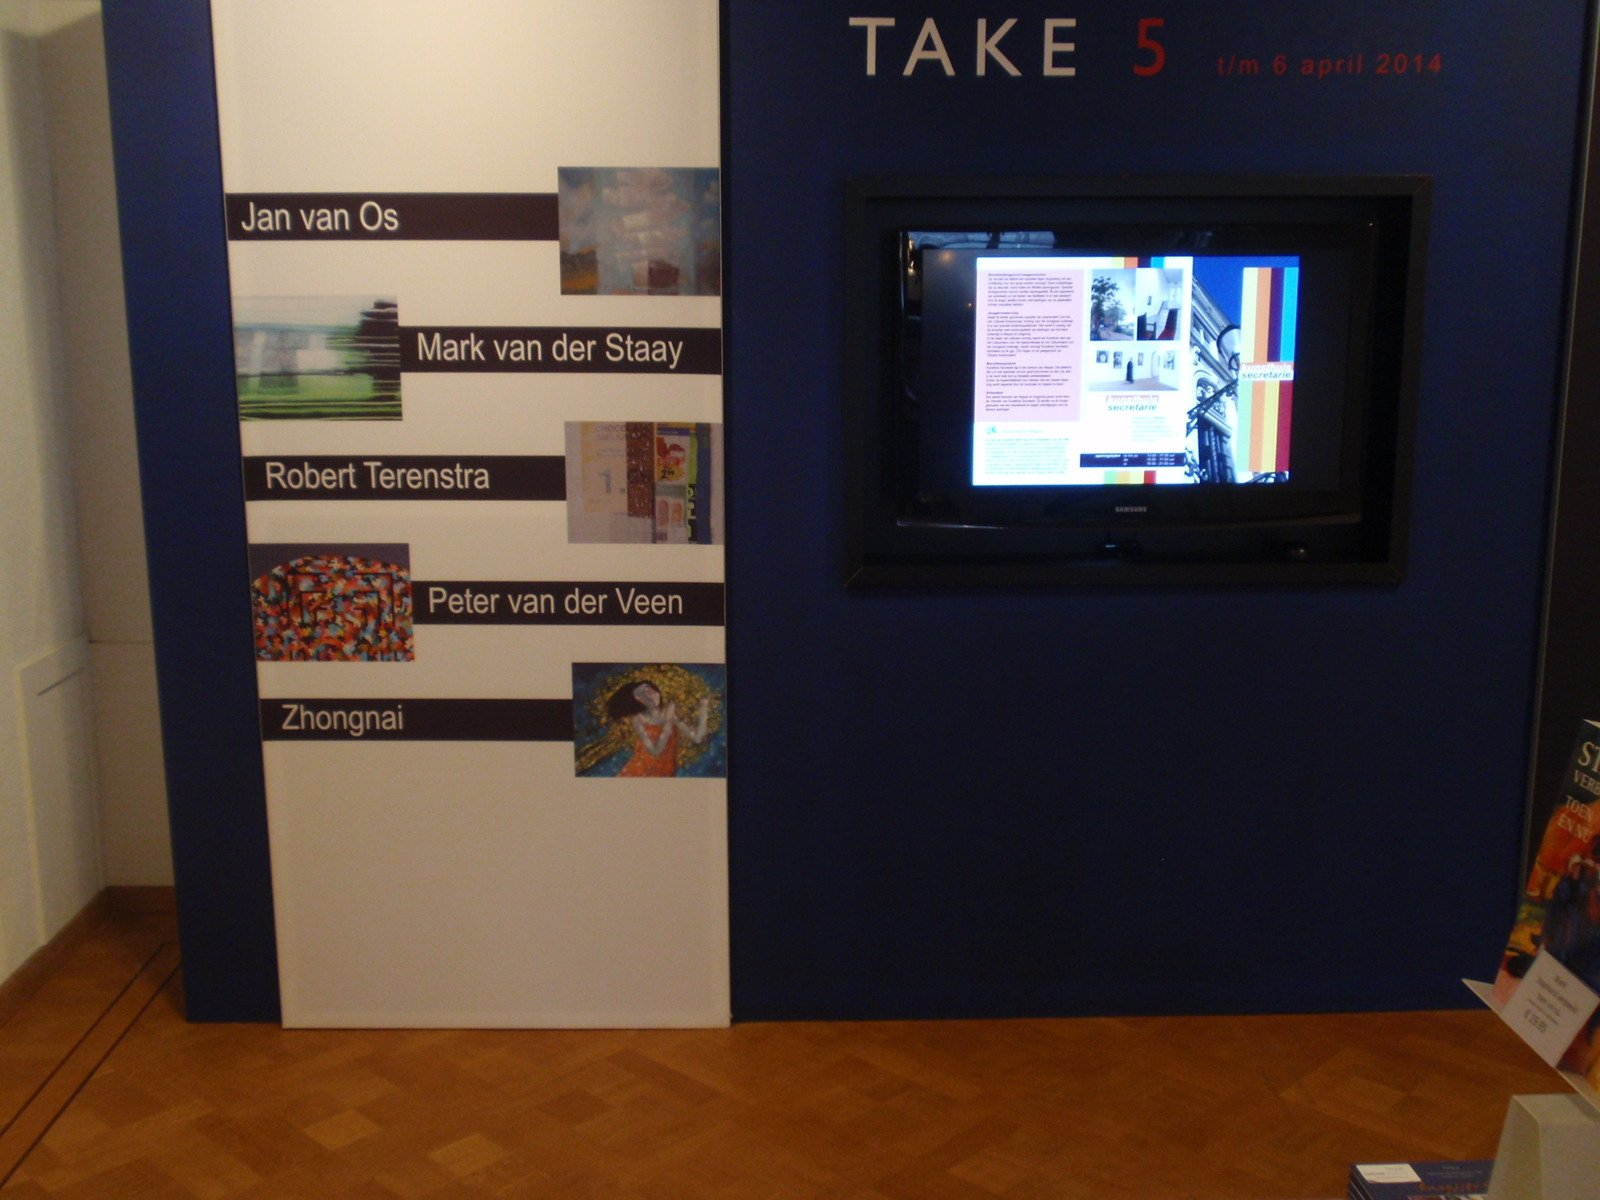 2014. Take 5 expo Secretarie, Meppel.